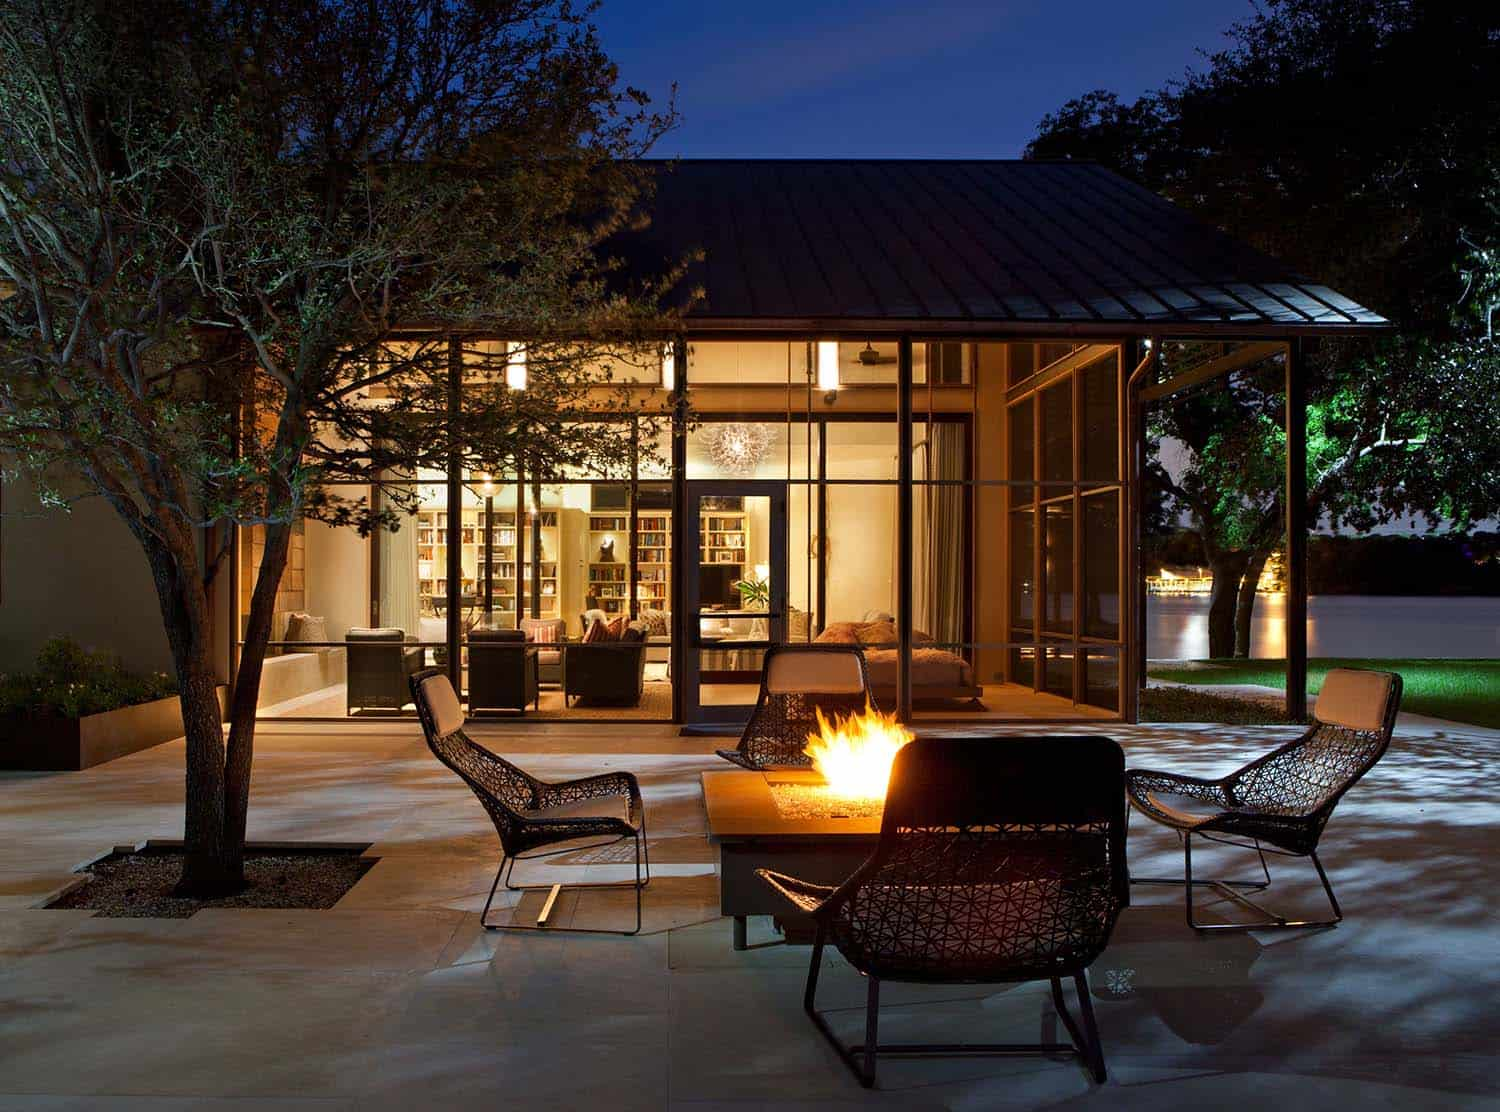 Contemporary Lake House Renovation-Furman Keil Architects-22-1 Kindesign